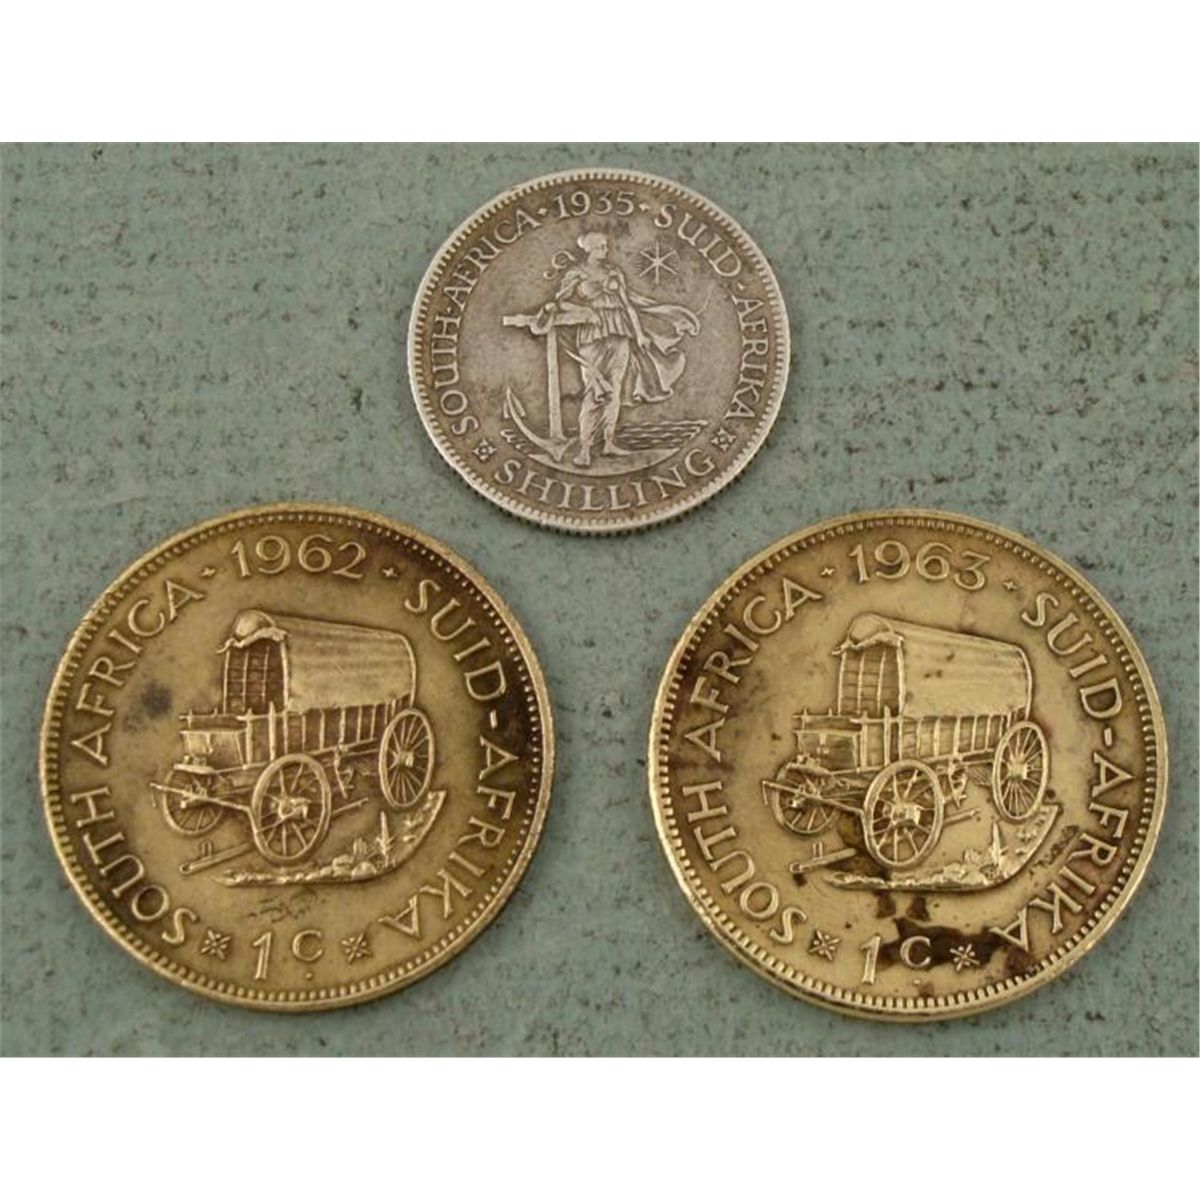 3 South African Coins 1935 1 Shilling 1962-63 1 Penny